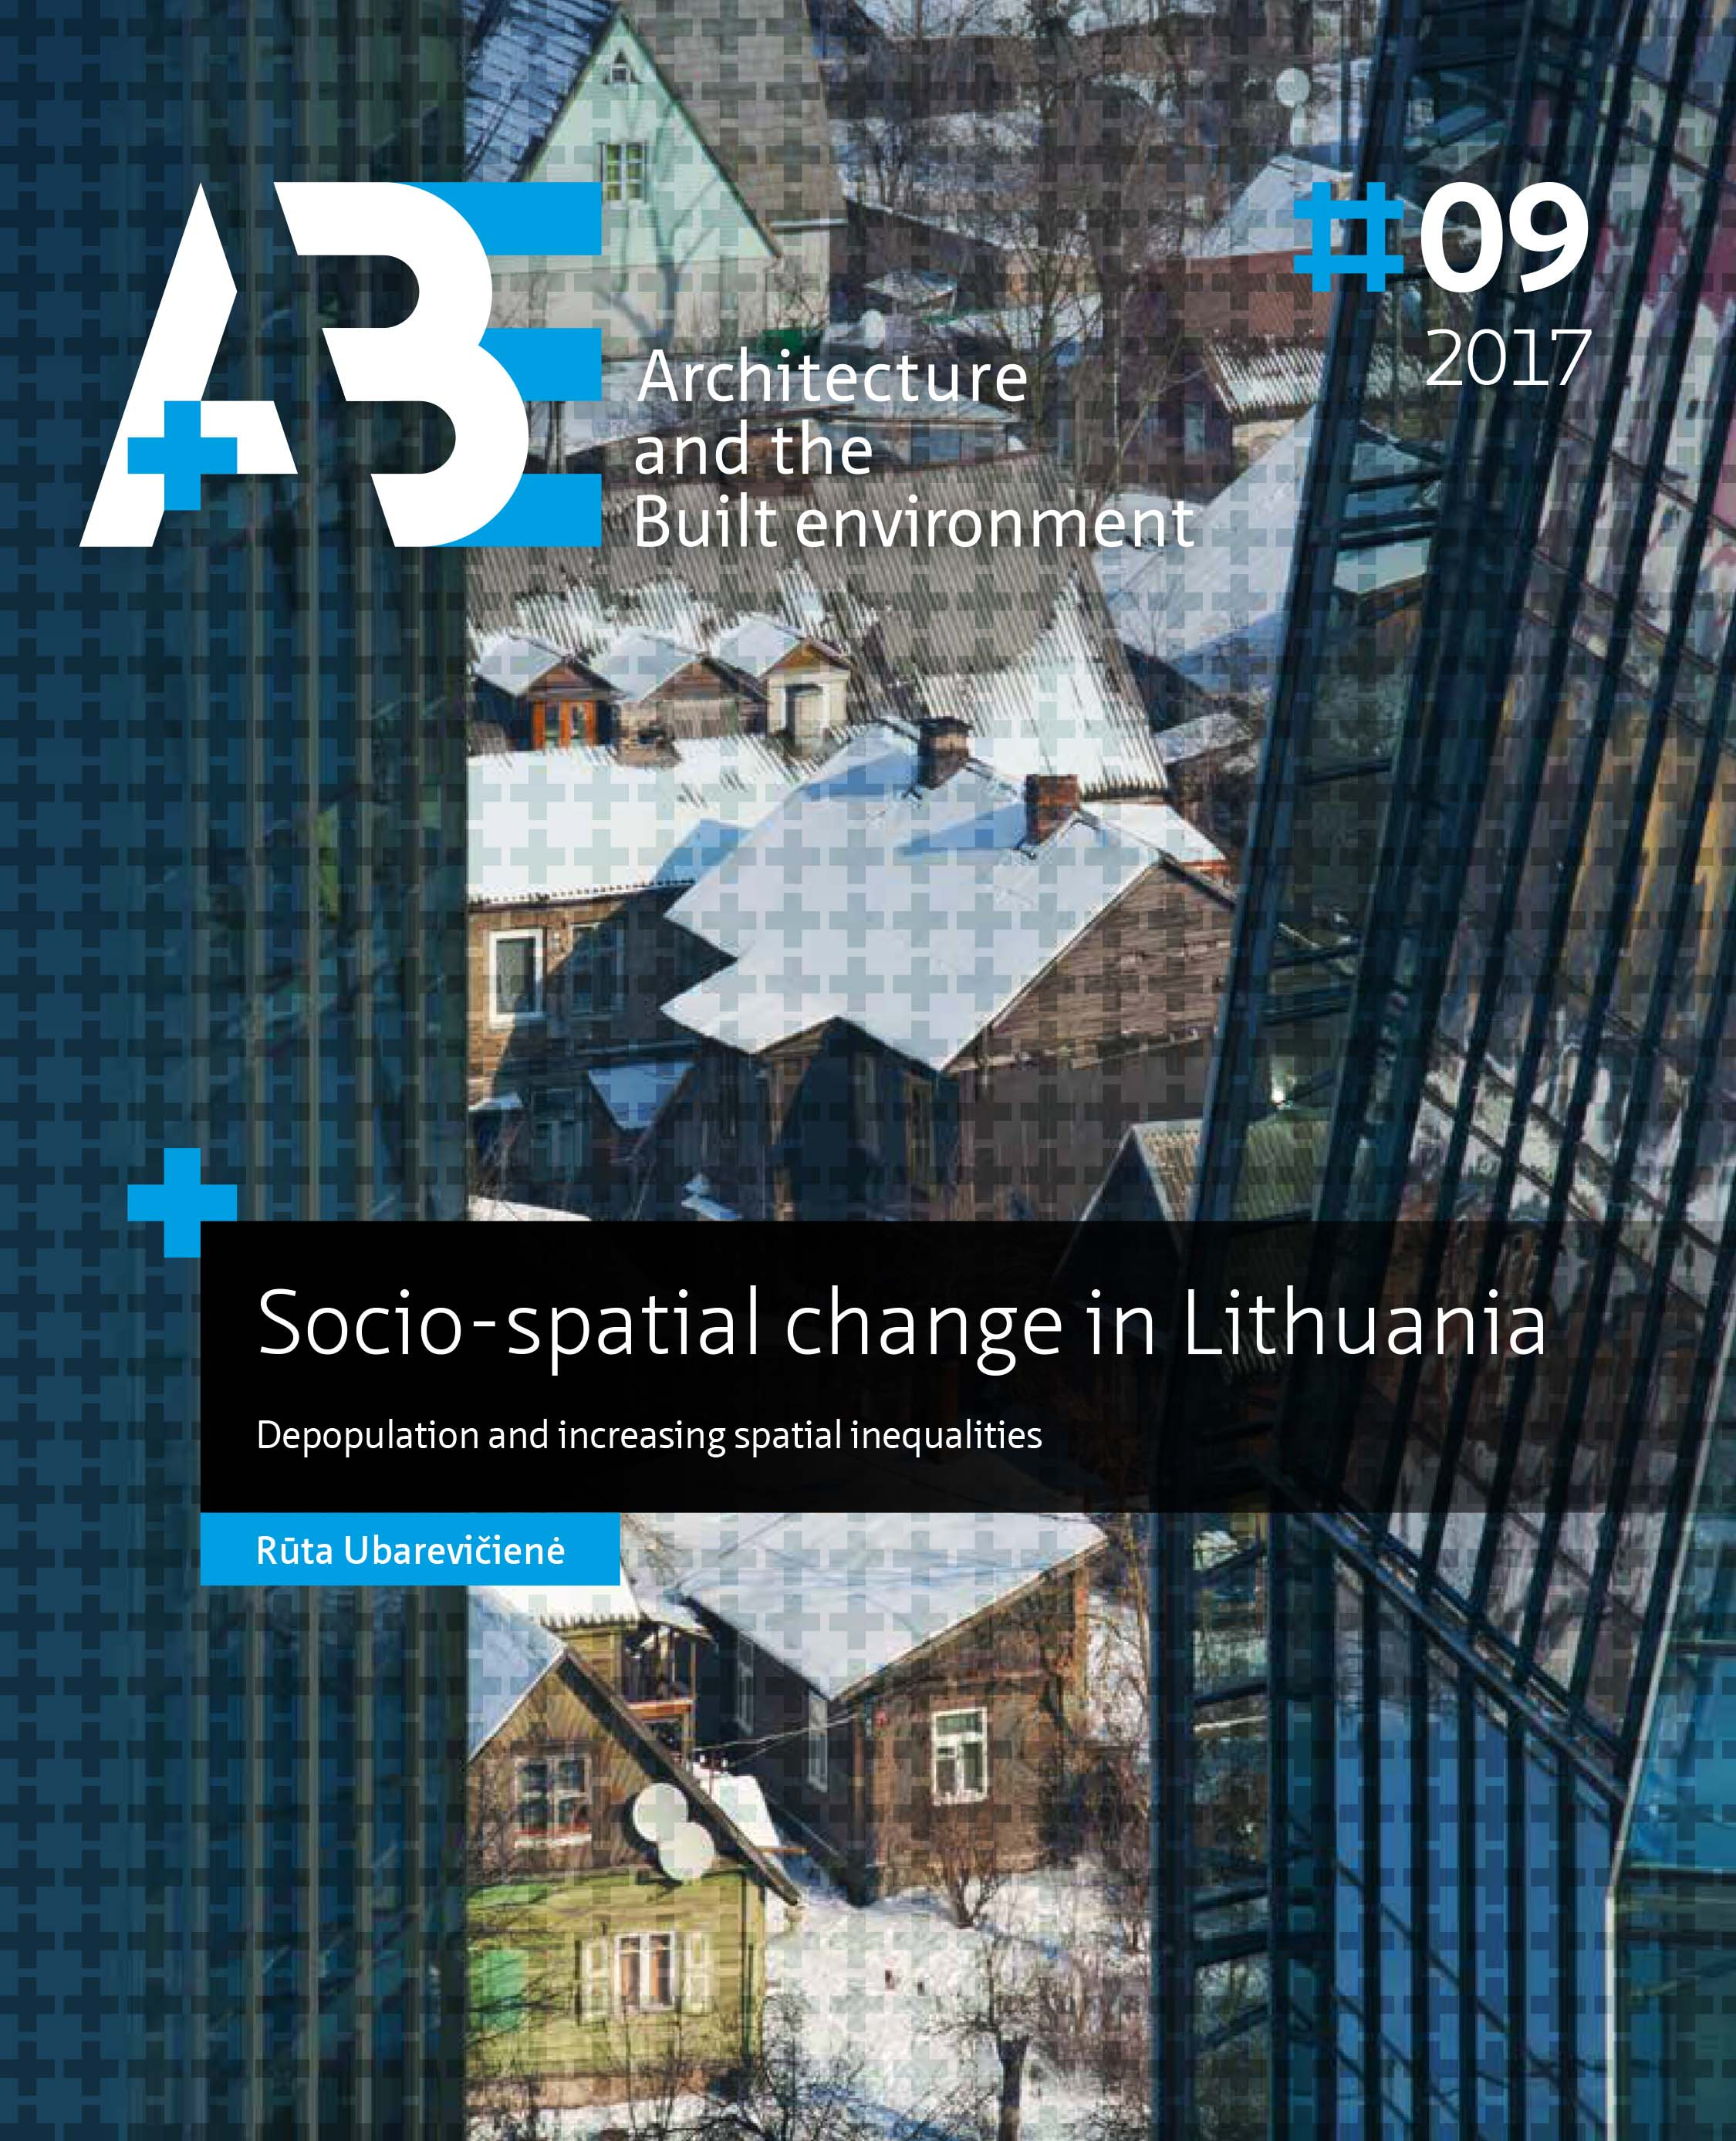 View No. 9 (2017): Socio-spatial change in Lithuania